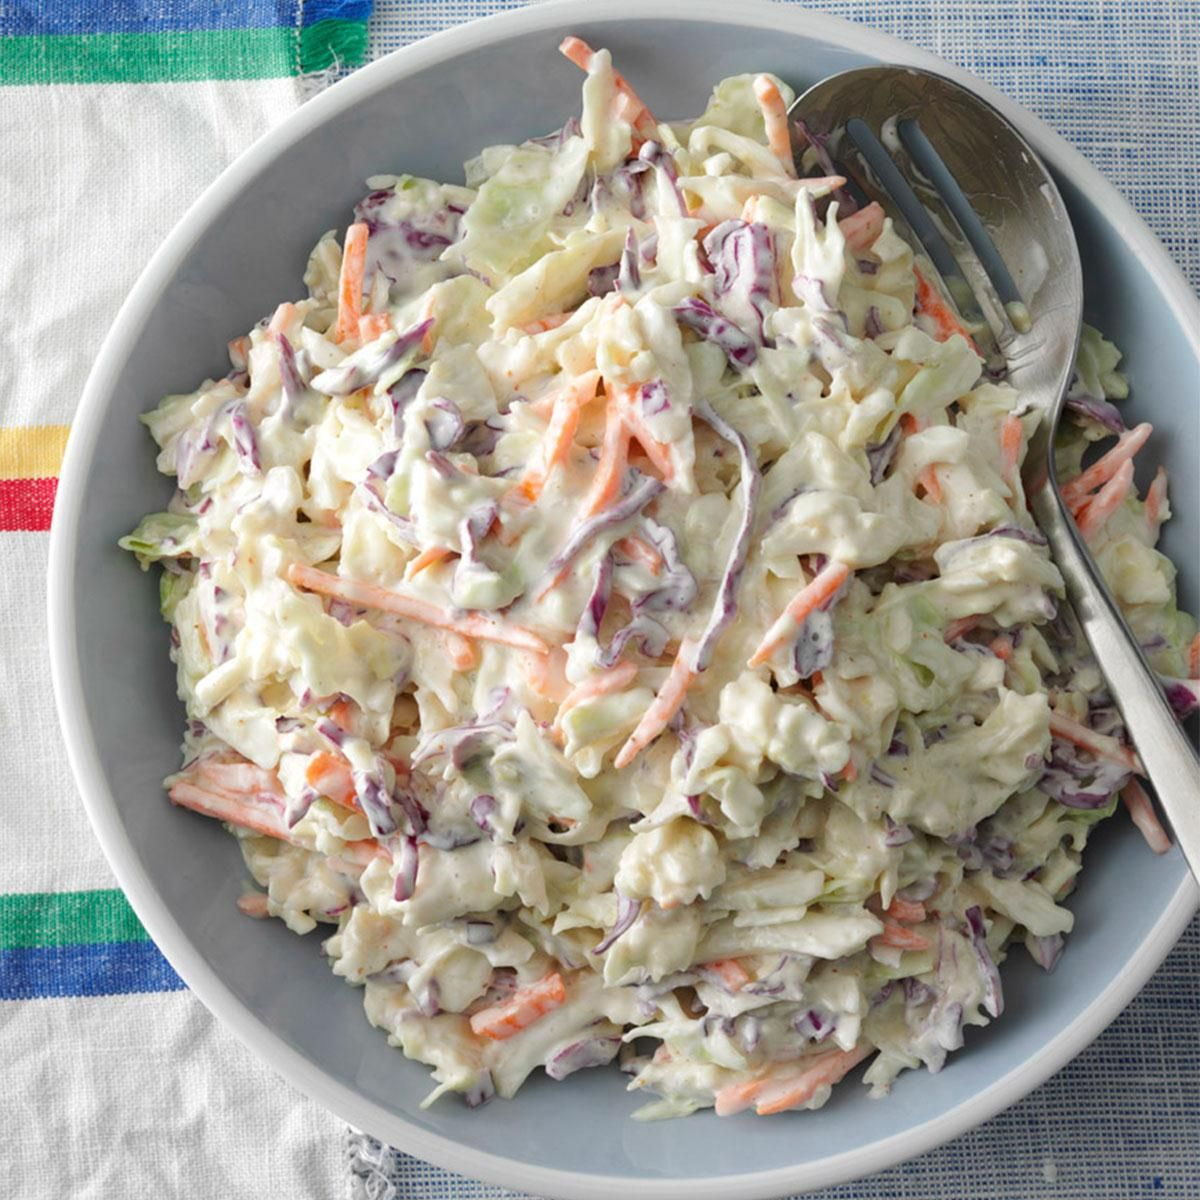 10 Easy Cole Slaw Recipes And Other Cabbage Recipes: Creamy Coleslaw, Best